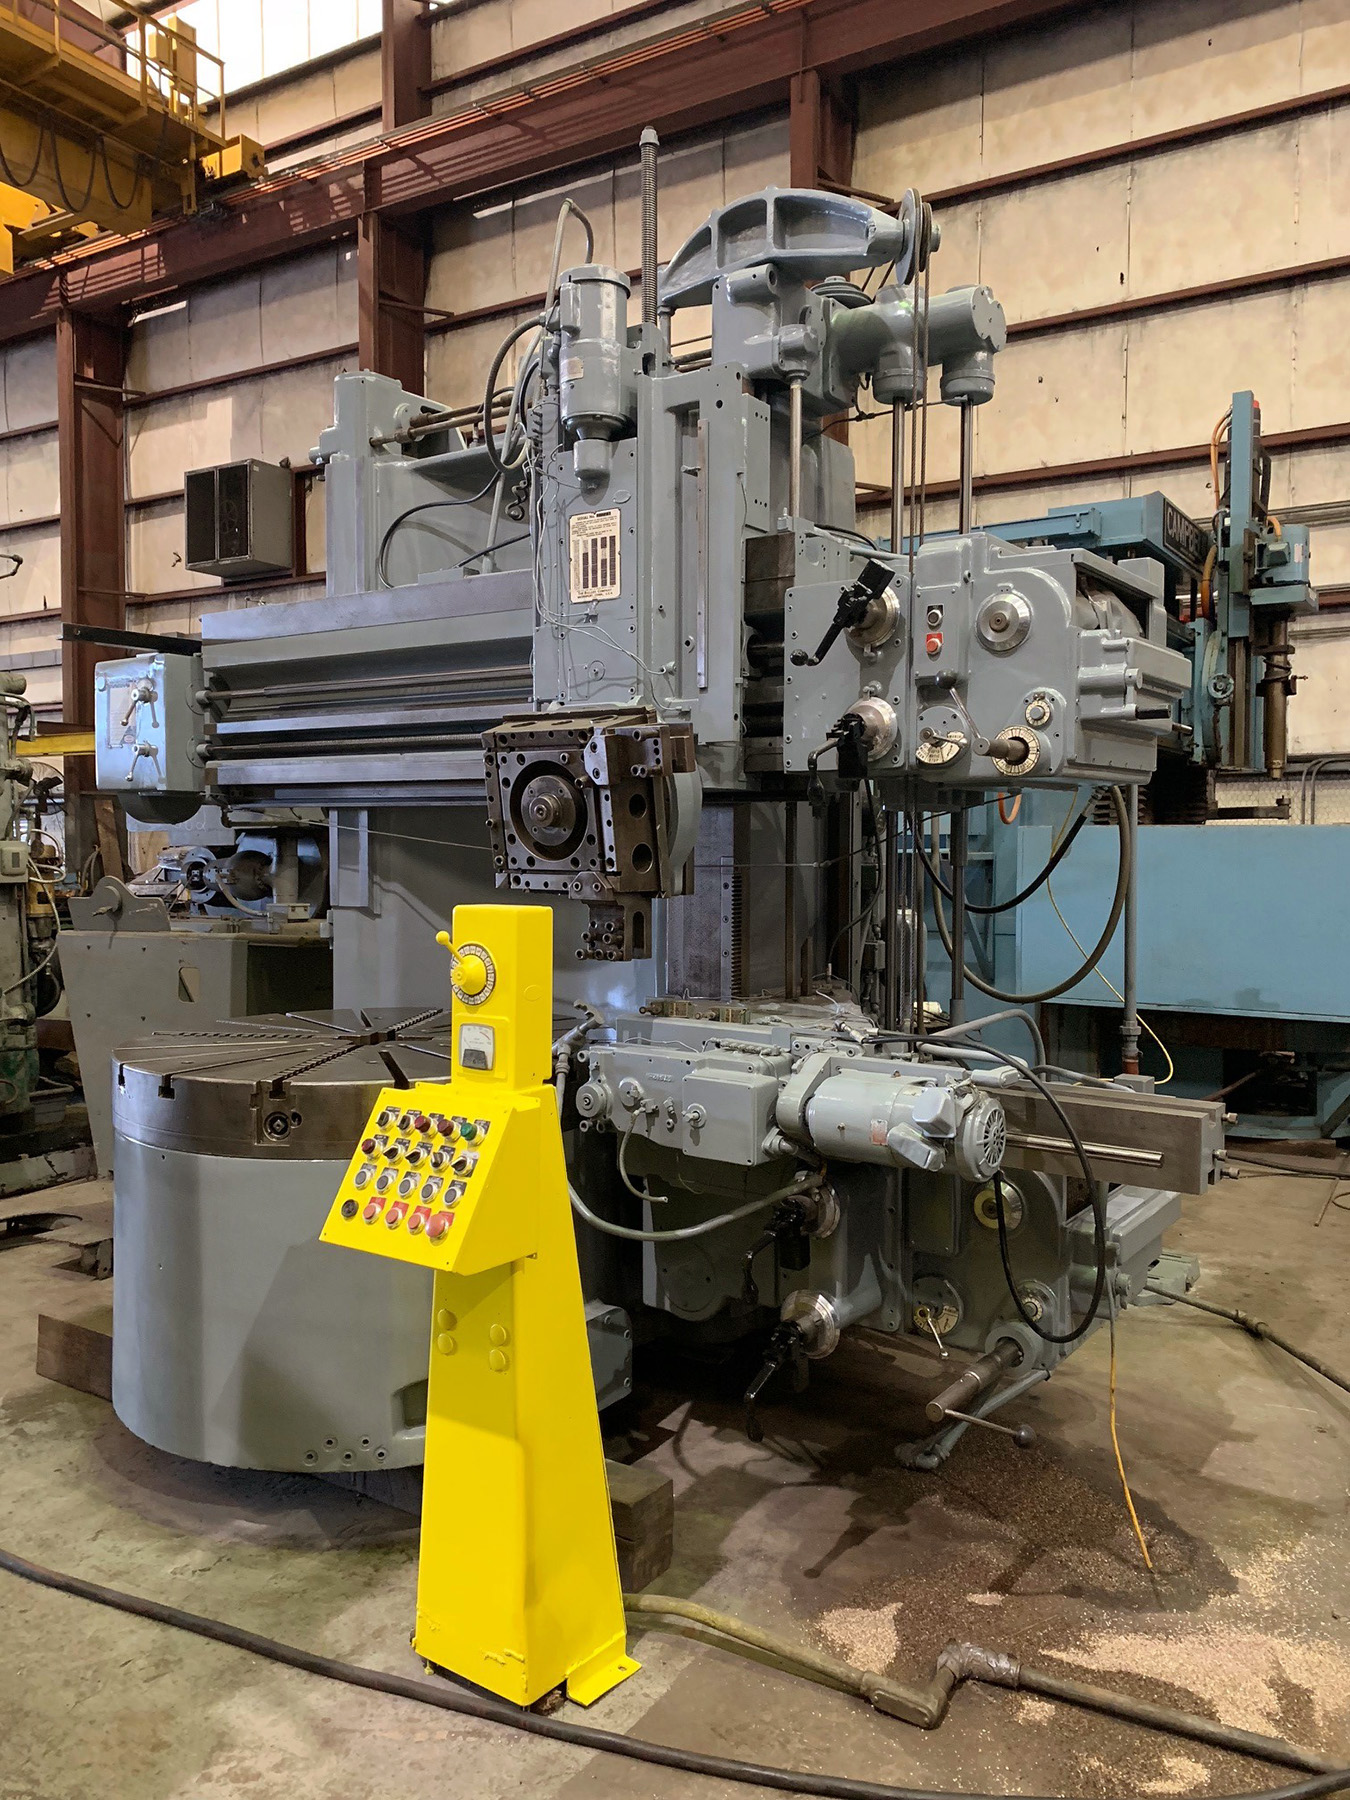 "USED, 54"" BULLARD VERTICAL TURRET LATHE"